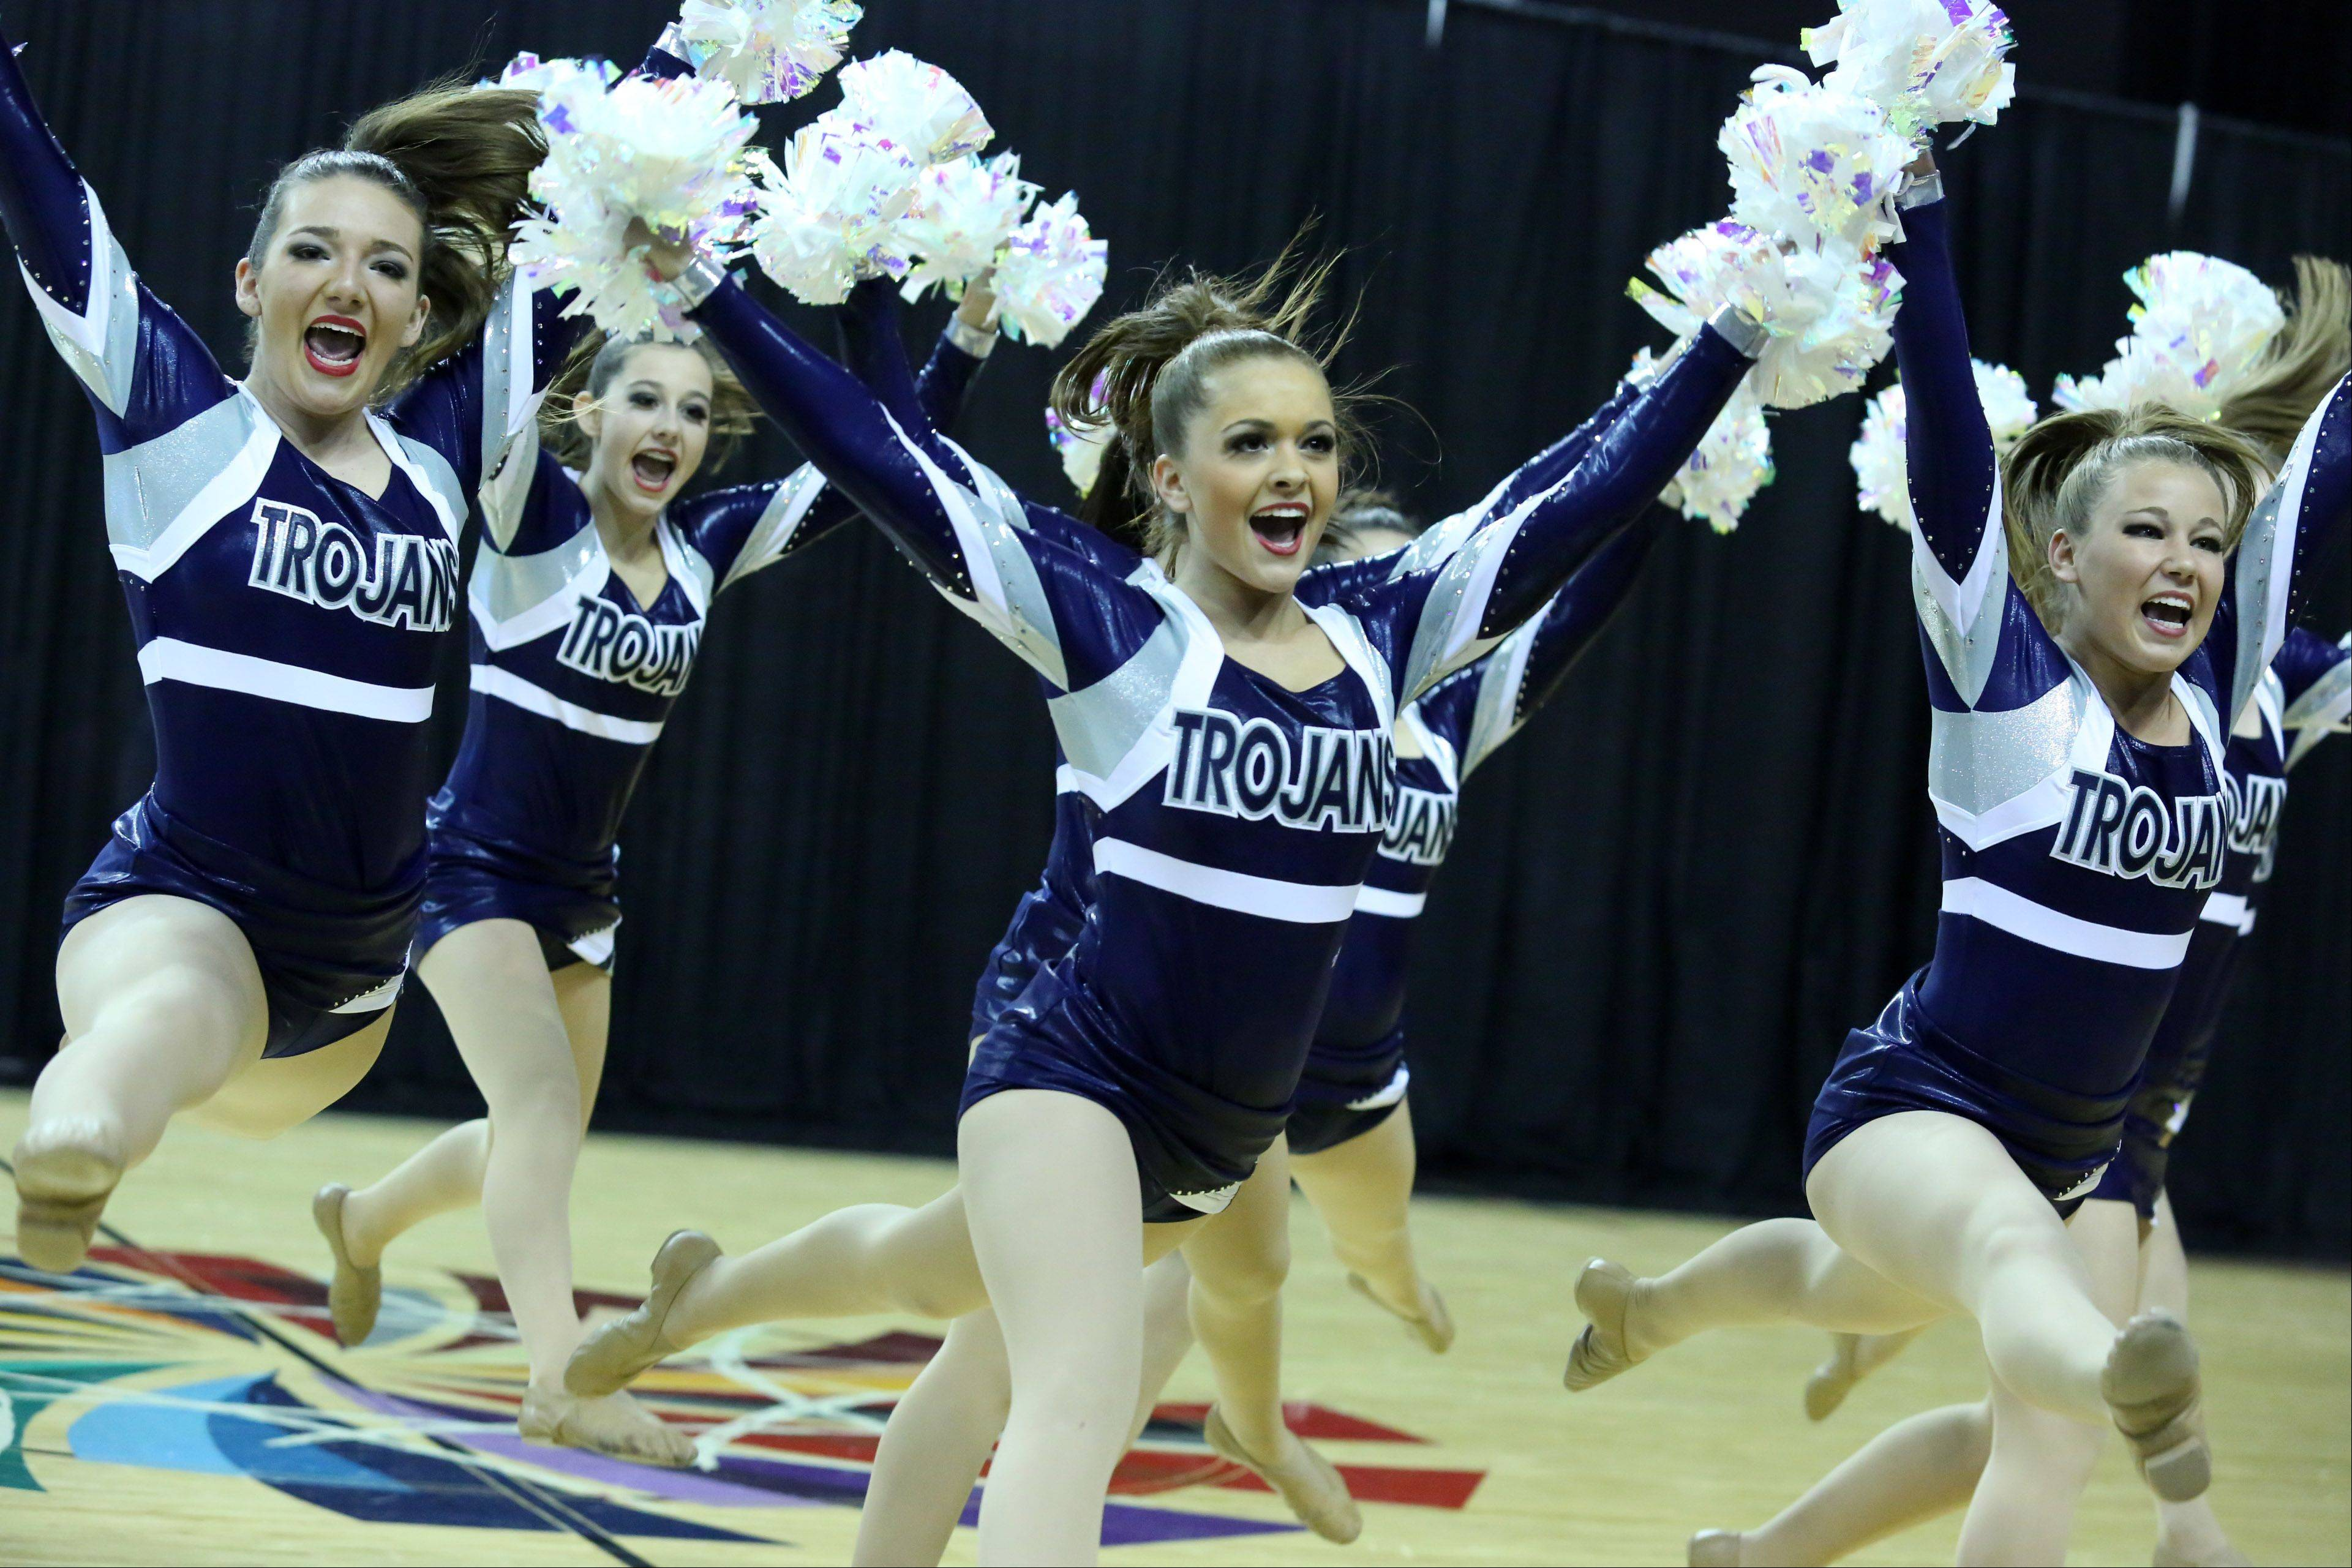 Cary-Grove High School cheer team competes in the IHSA Winter Meltdown Cheerleading and Dance Competition at Sears Centre Arena on Saturday in Hoffman Estates.